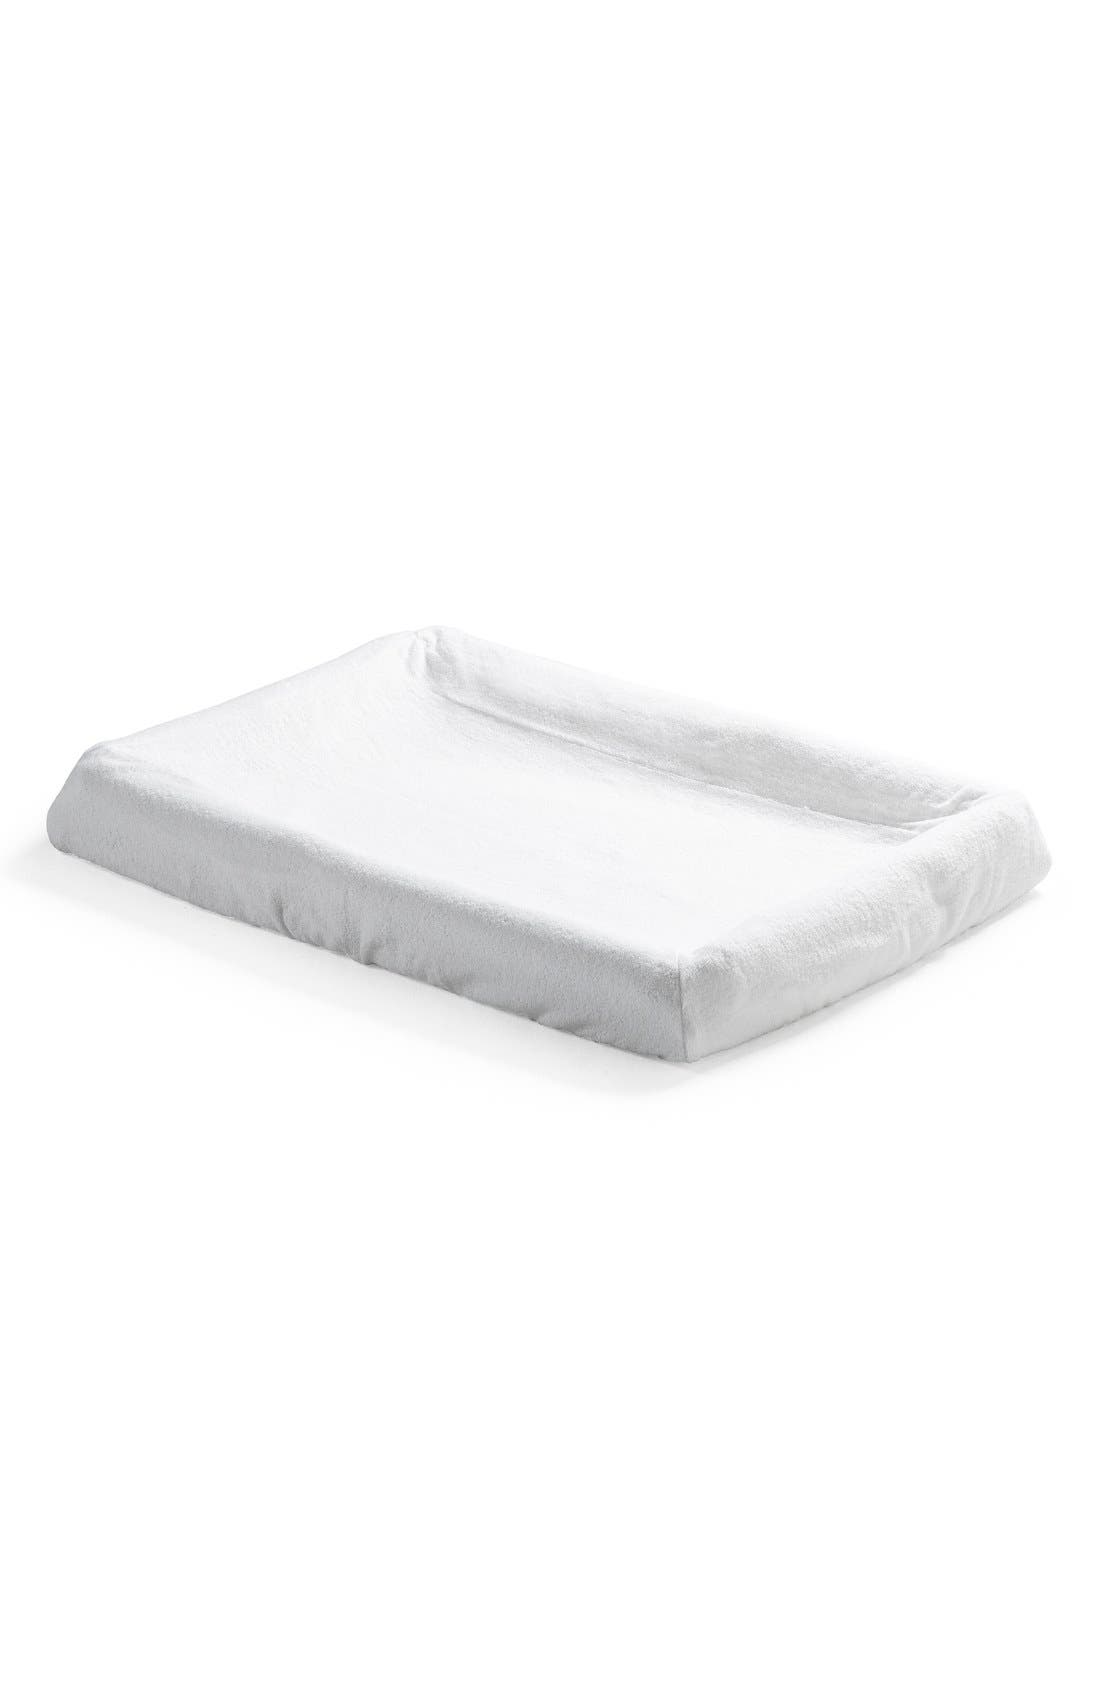 'Home<sup>™</sup>' Changer Mattress Cover,                             Main thumbnail 1, color,                             White